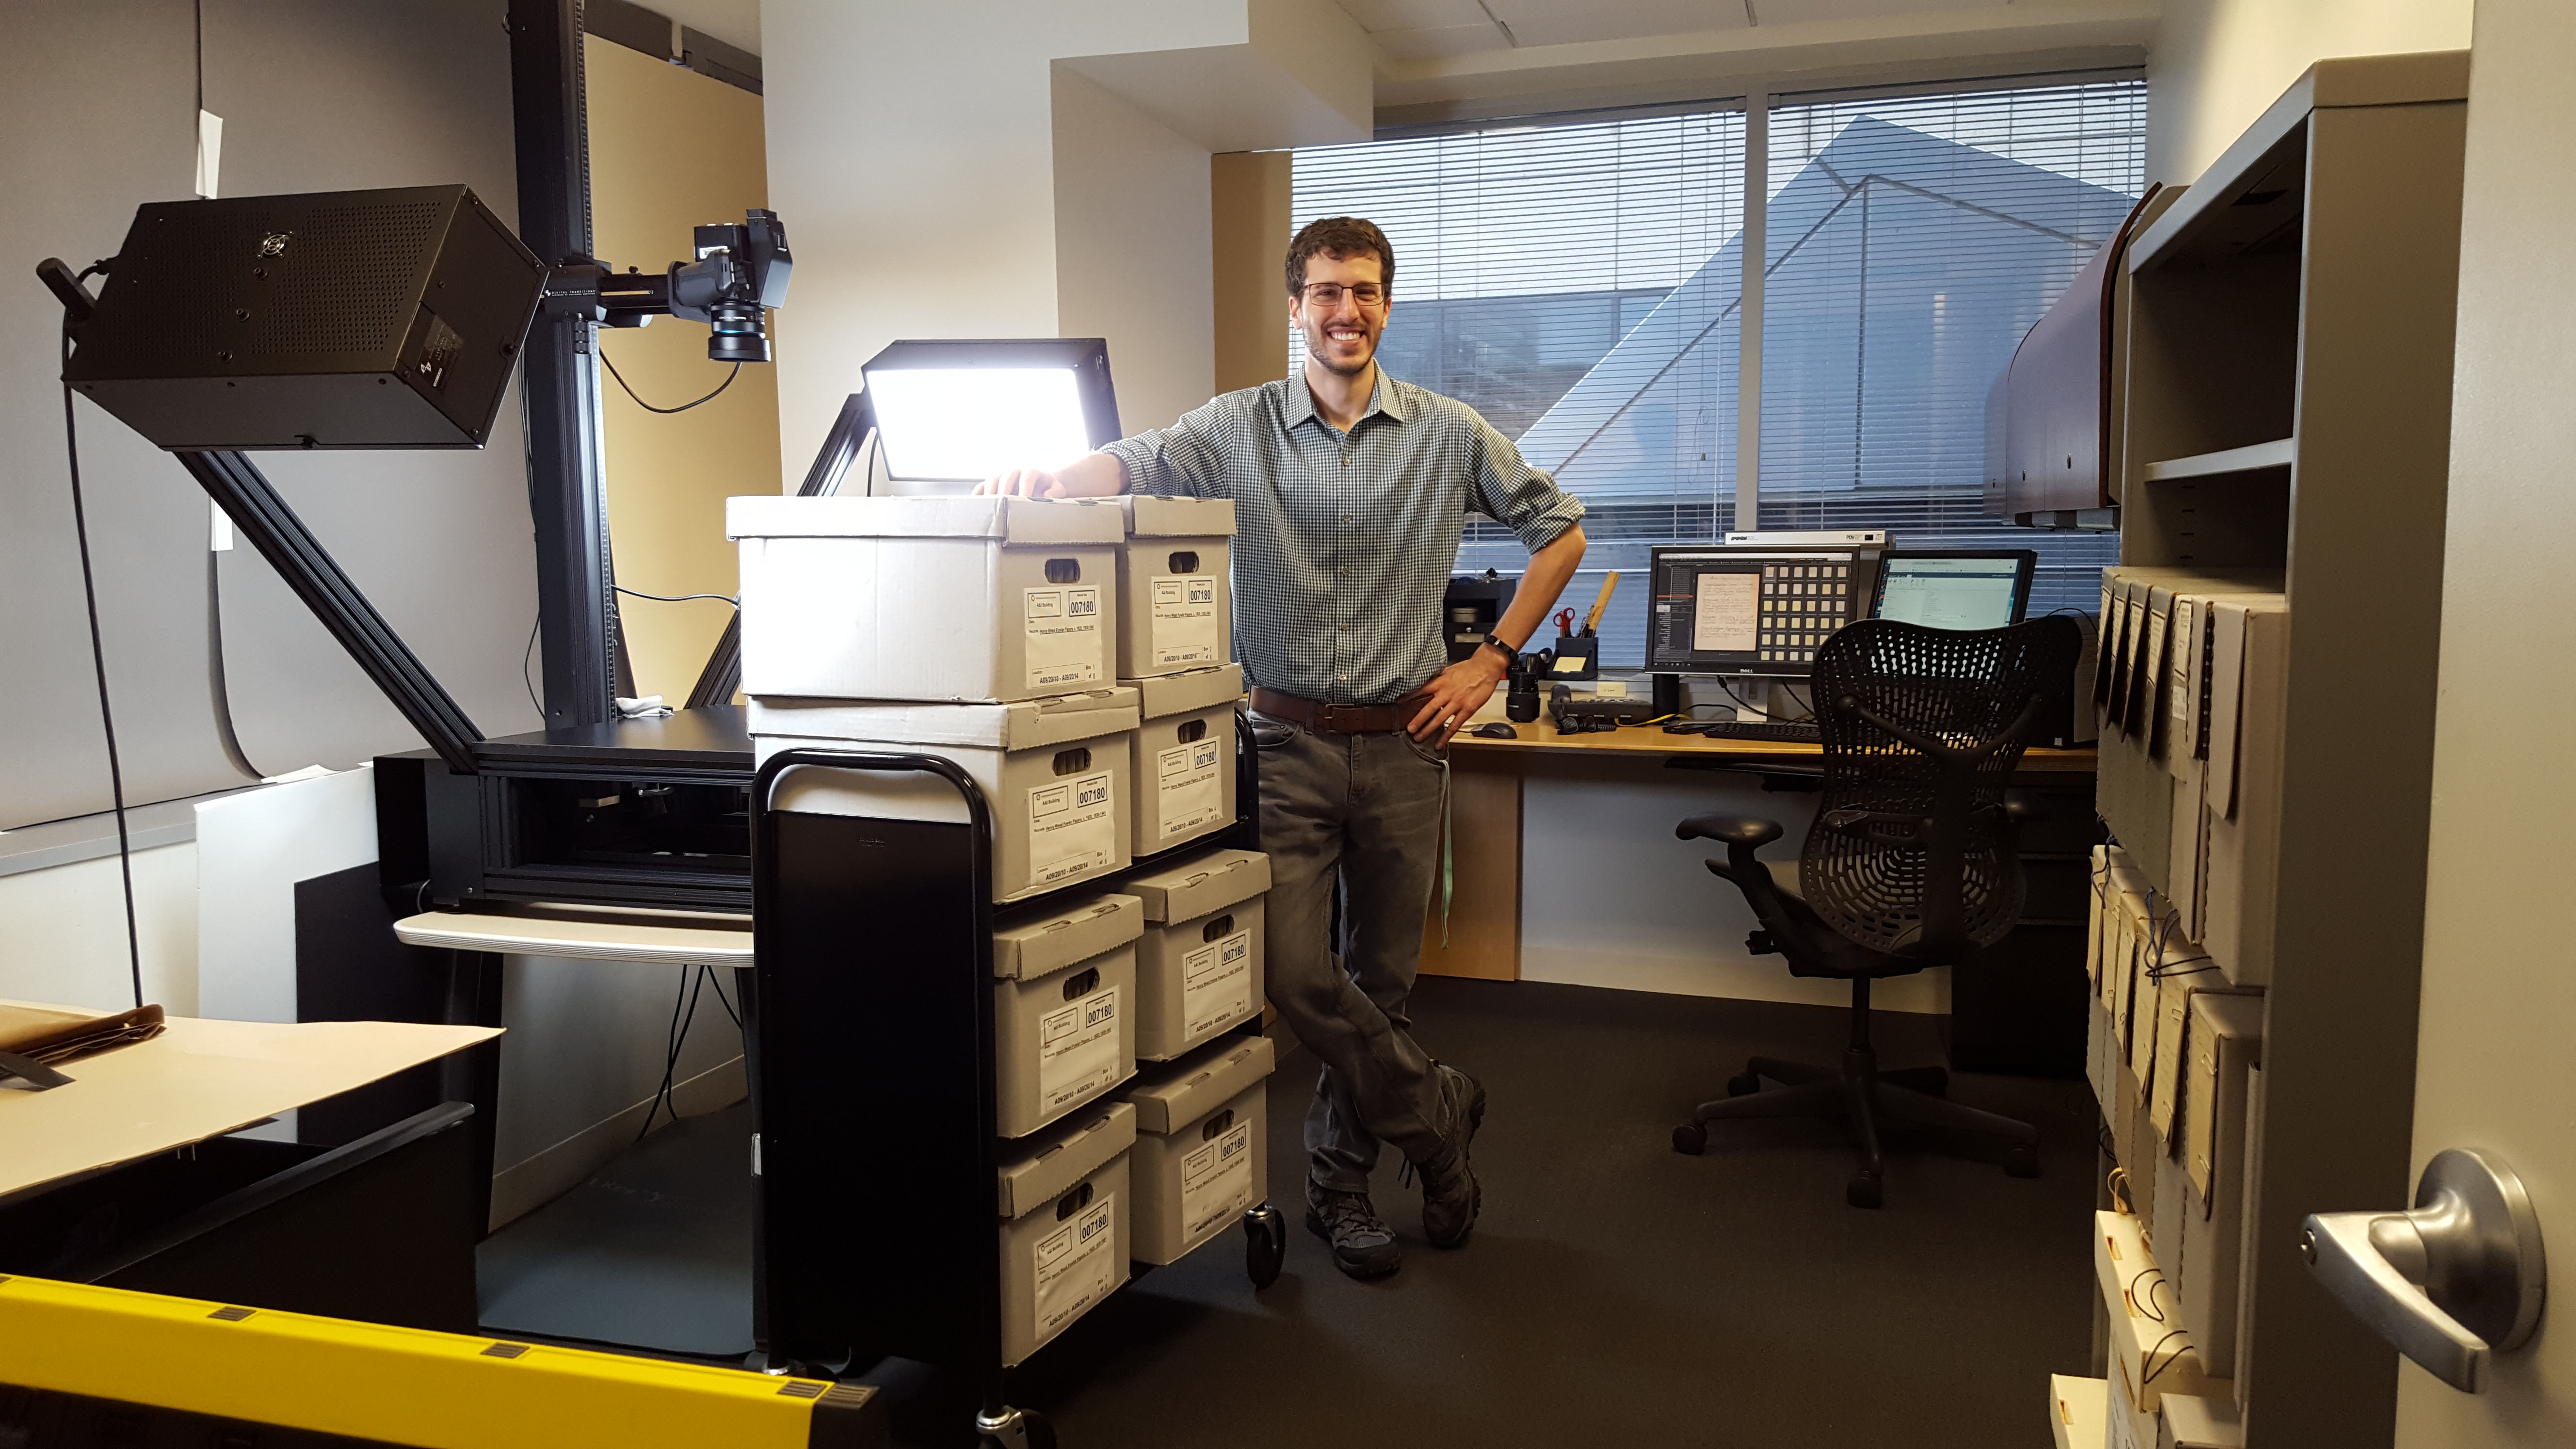 Fowler's unpublished manuscripts in the digital imaging lab, with imaging tech Charles Zange for scale. Photo by Mignonette D. Johnson. Smithsonian Institution Archives.